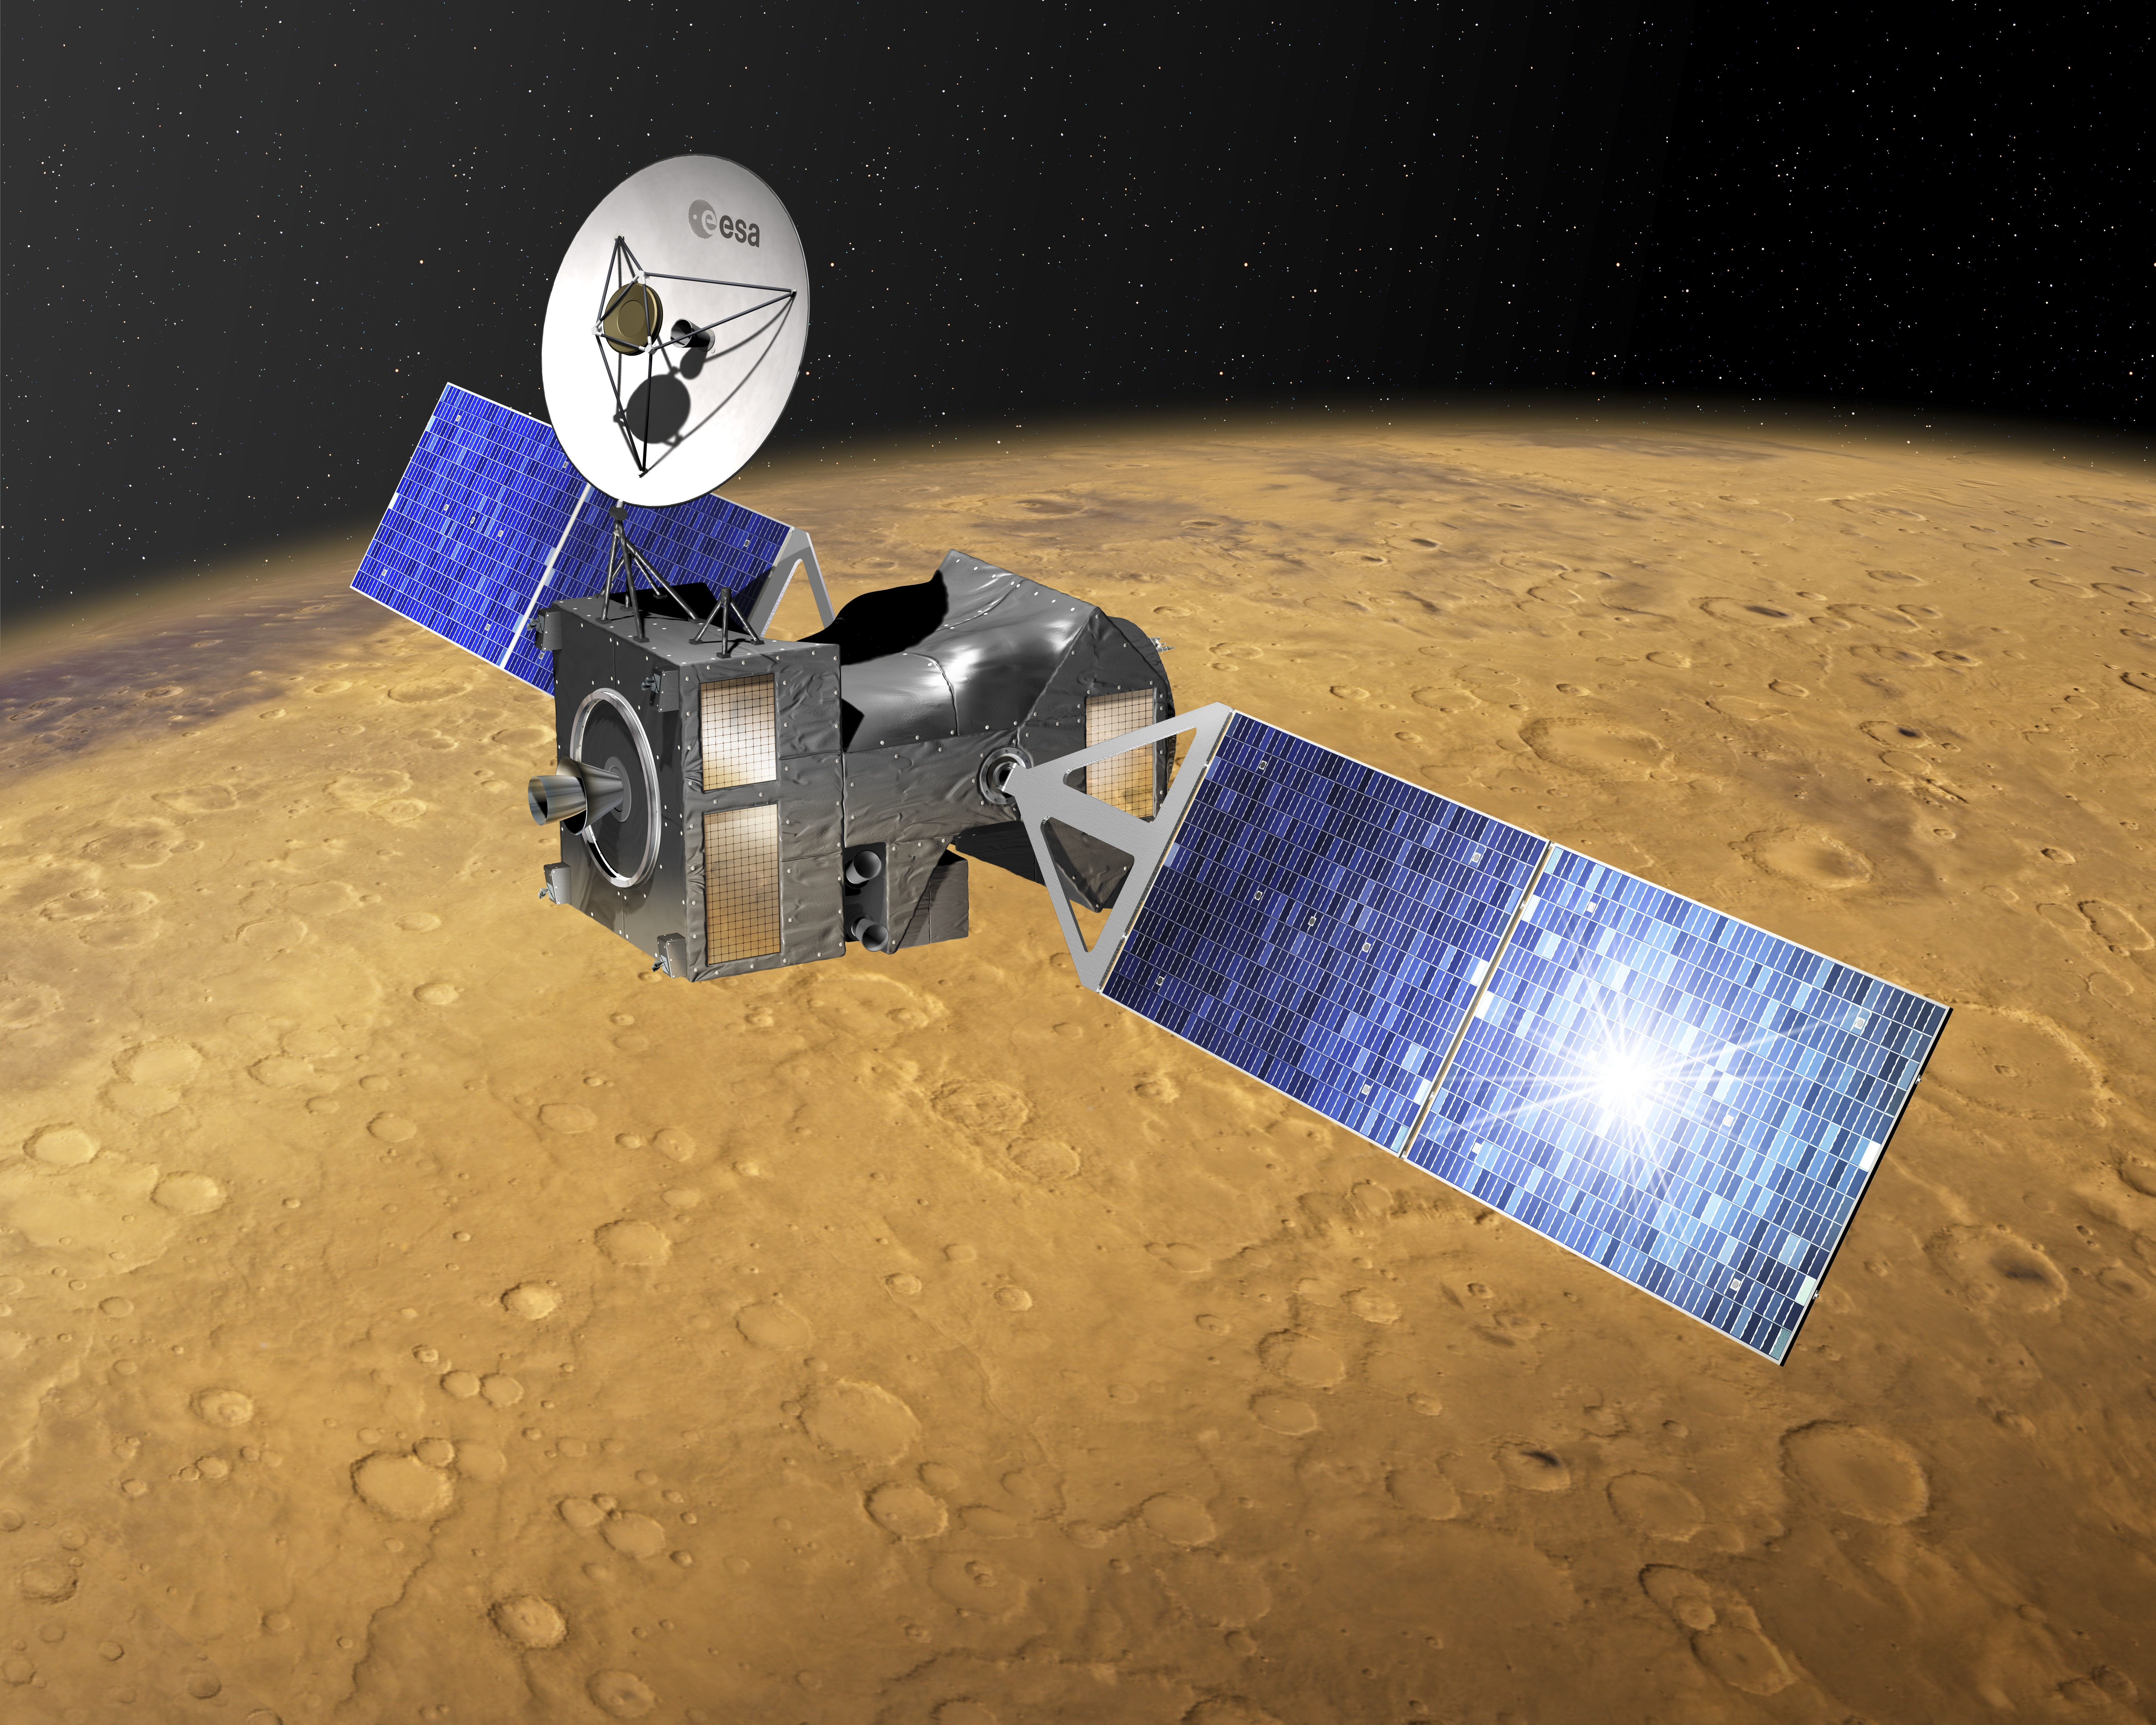 ExoMars Trace Gas Orbiter at Mars. TGO will be launched in 2016 with Schiaparelli, the entry, descent and landing demonstrator module. It will search for evidence of methane and other atmospheric gases that could be signatures of active biological or geological processes on Mars. TGO will also serve as a communications relay for the rover and surface science platform that will be launched in 2018. Credit: ESA–D. Ducros